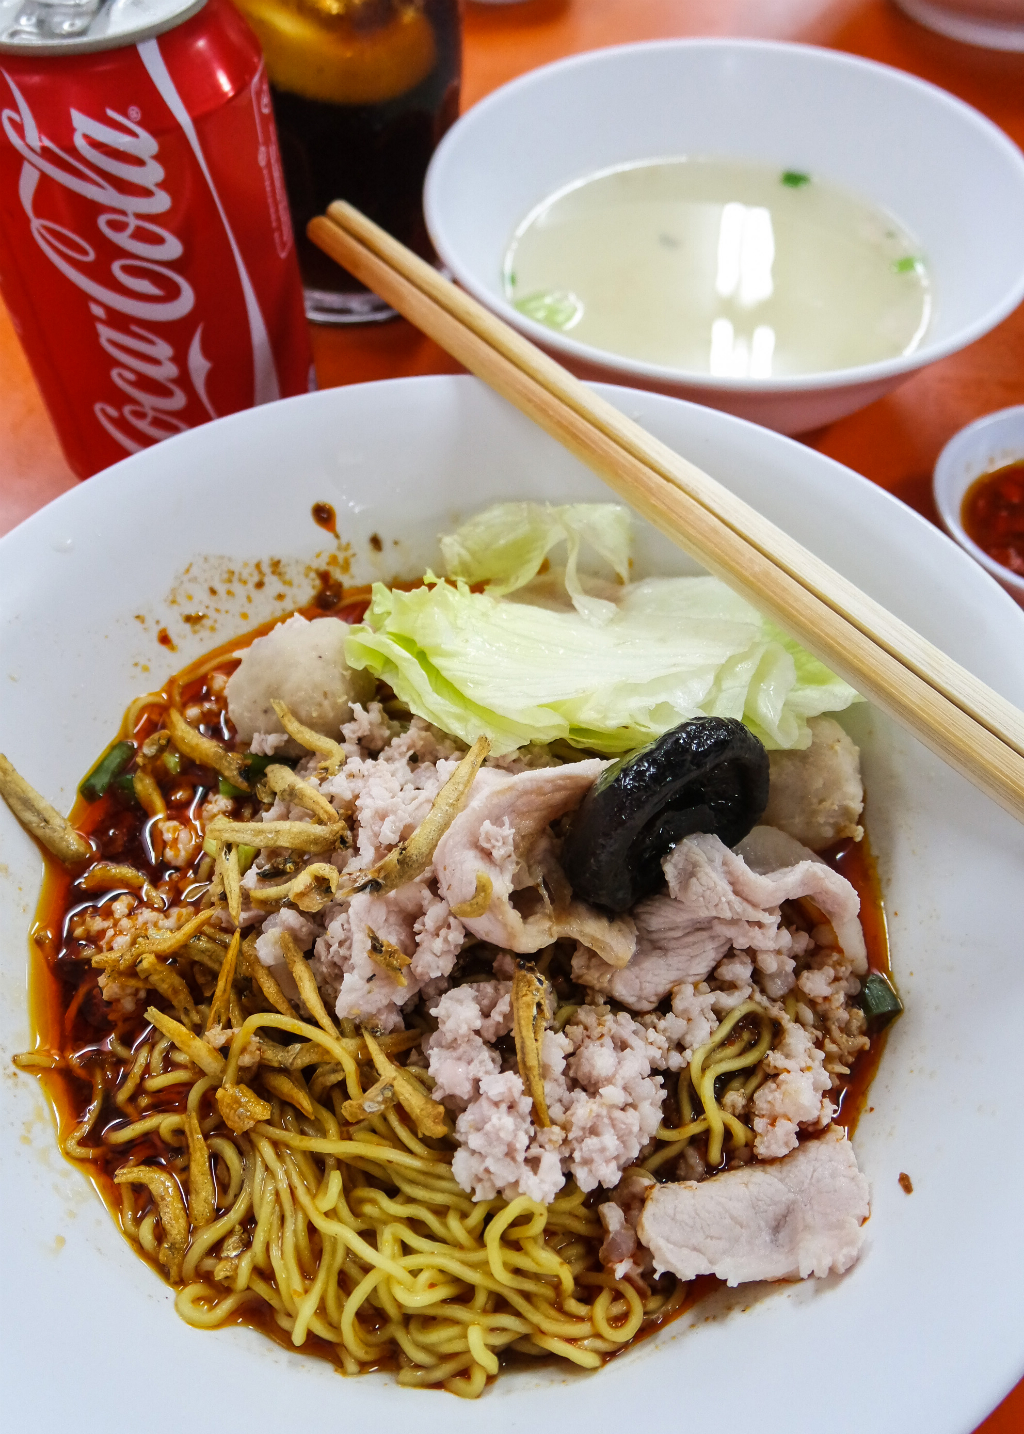 local food with Coke: Yan Kee Noodle House